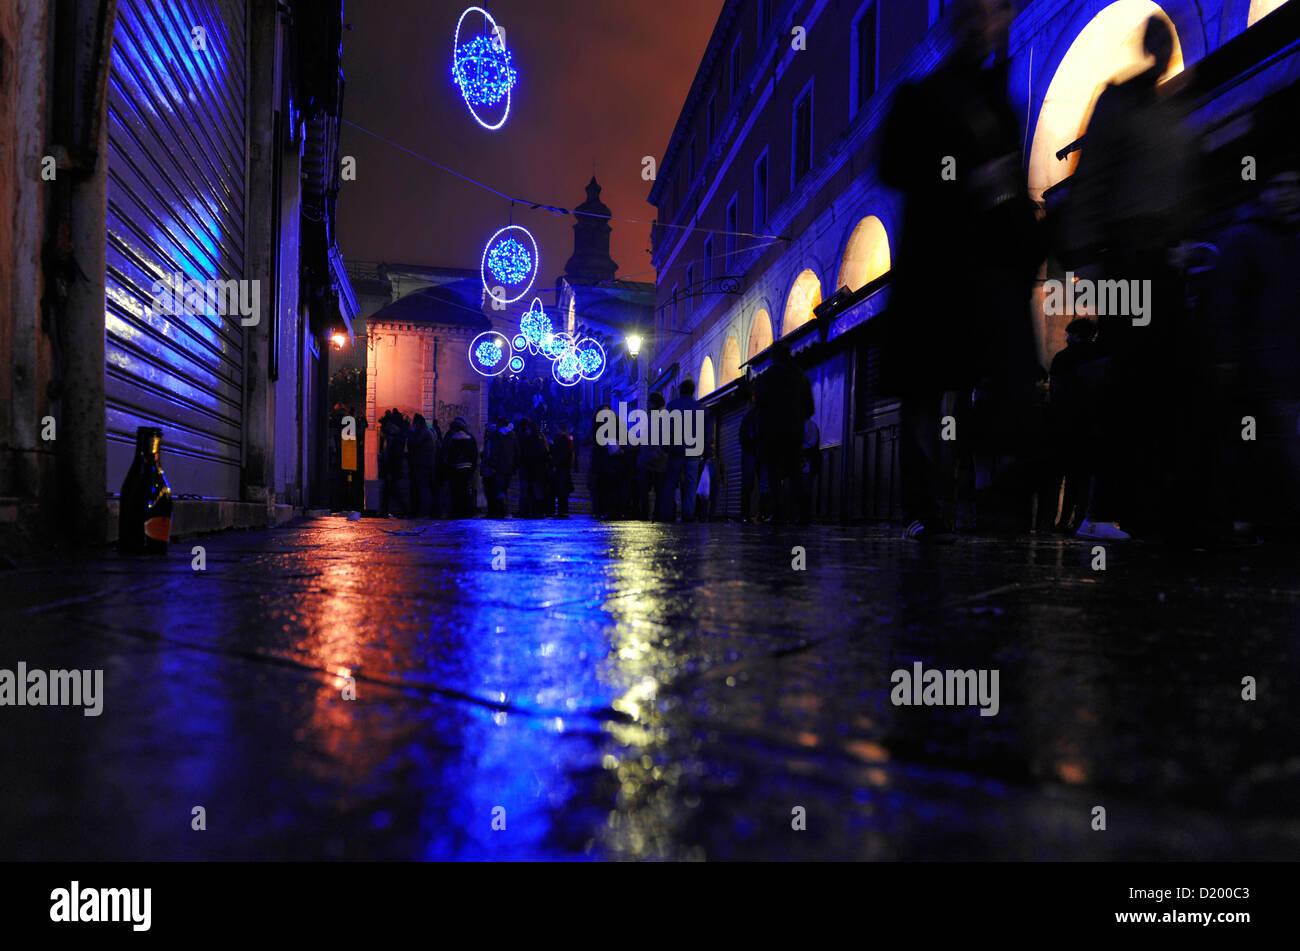 Neon lights in the street at night, New Year's Eve, near the Rialto Bridge, Venice, Italy - Stock Image